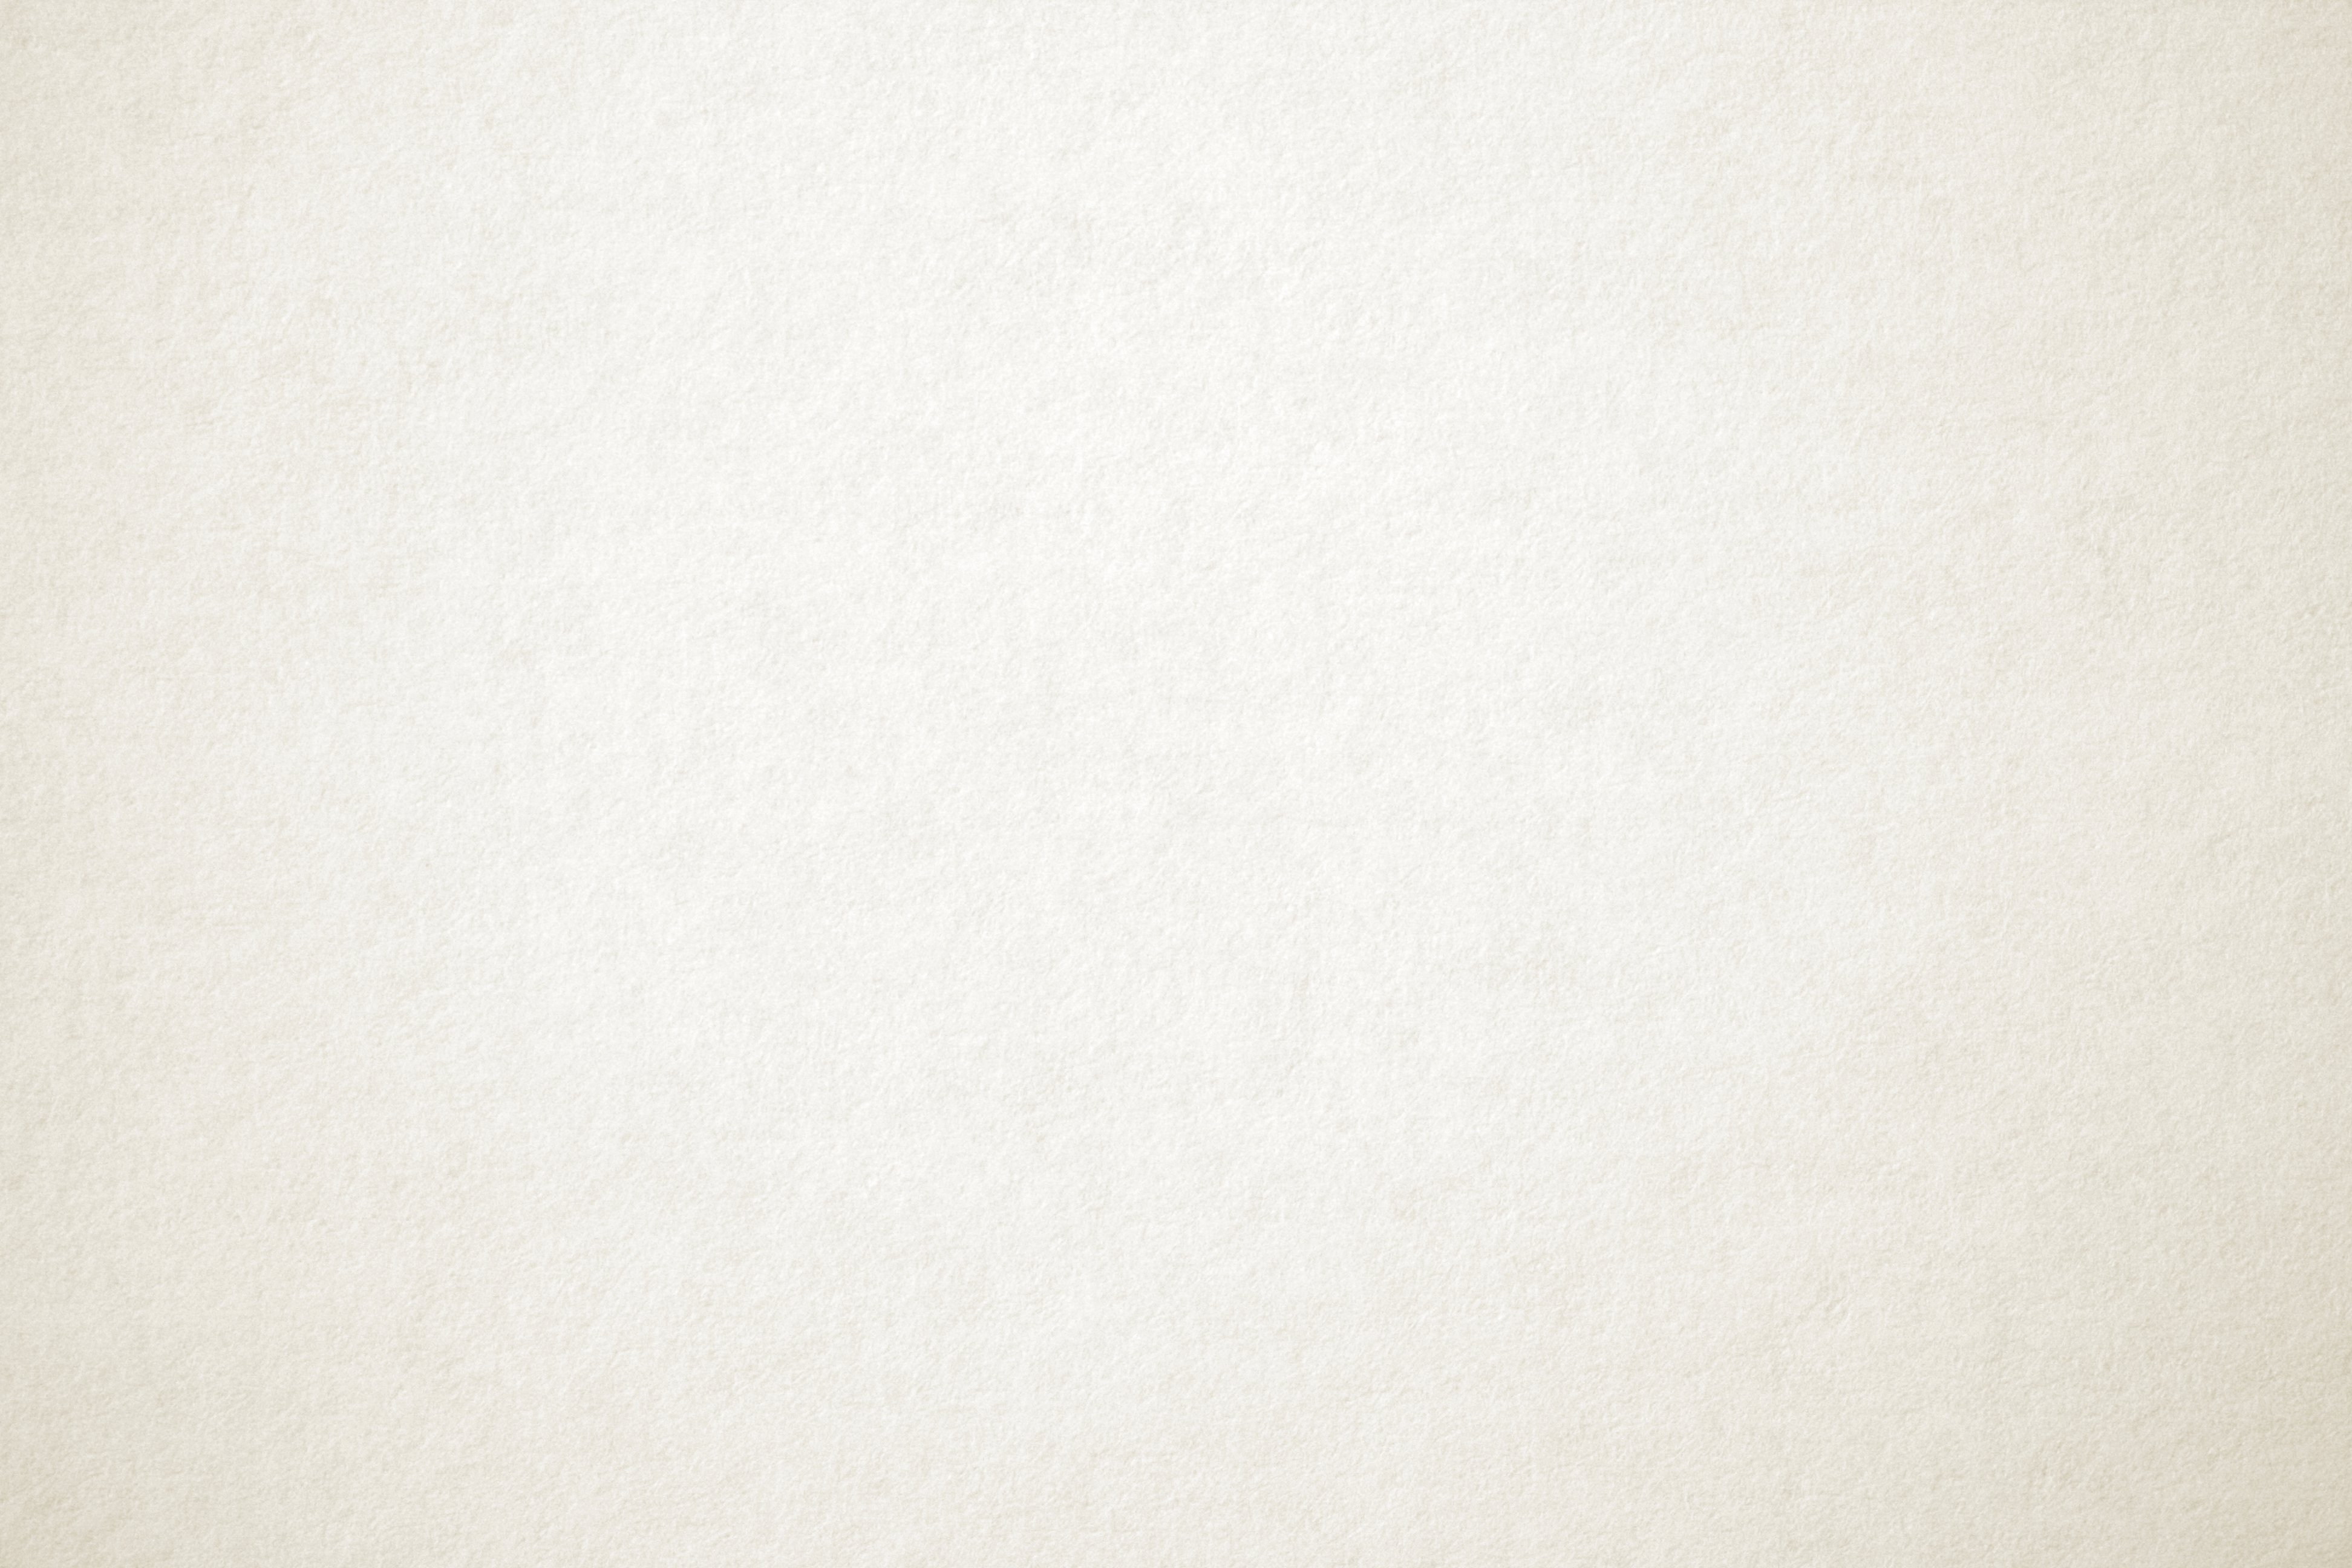 Ivory Off White Paper Texture Picture Free Photograph Photos